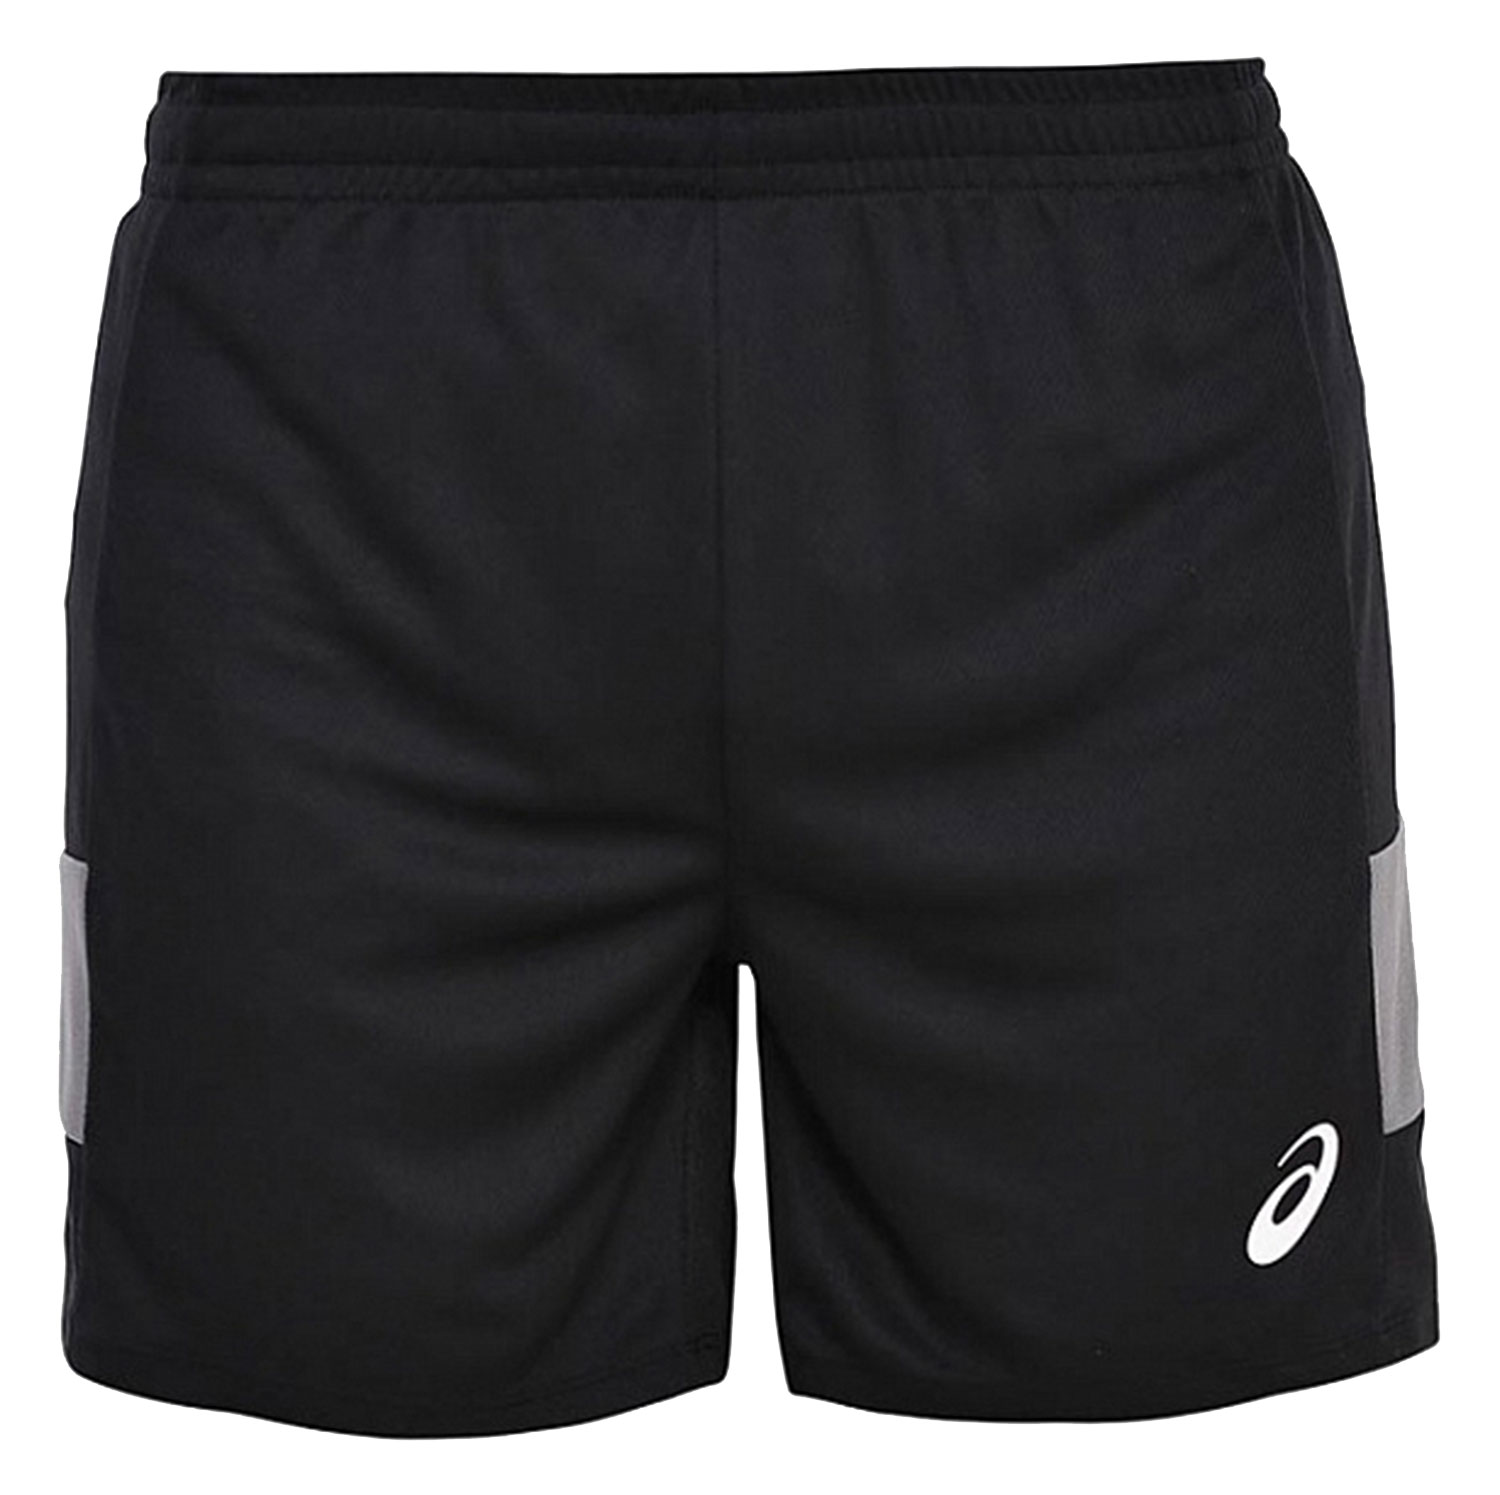 Shorts ASICS 149130-0904 sports and entertainment for women oudiniao sports and leisure shoes